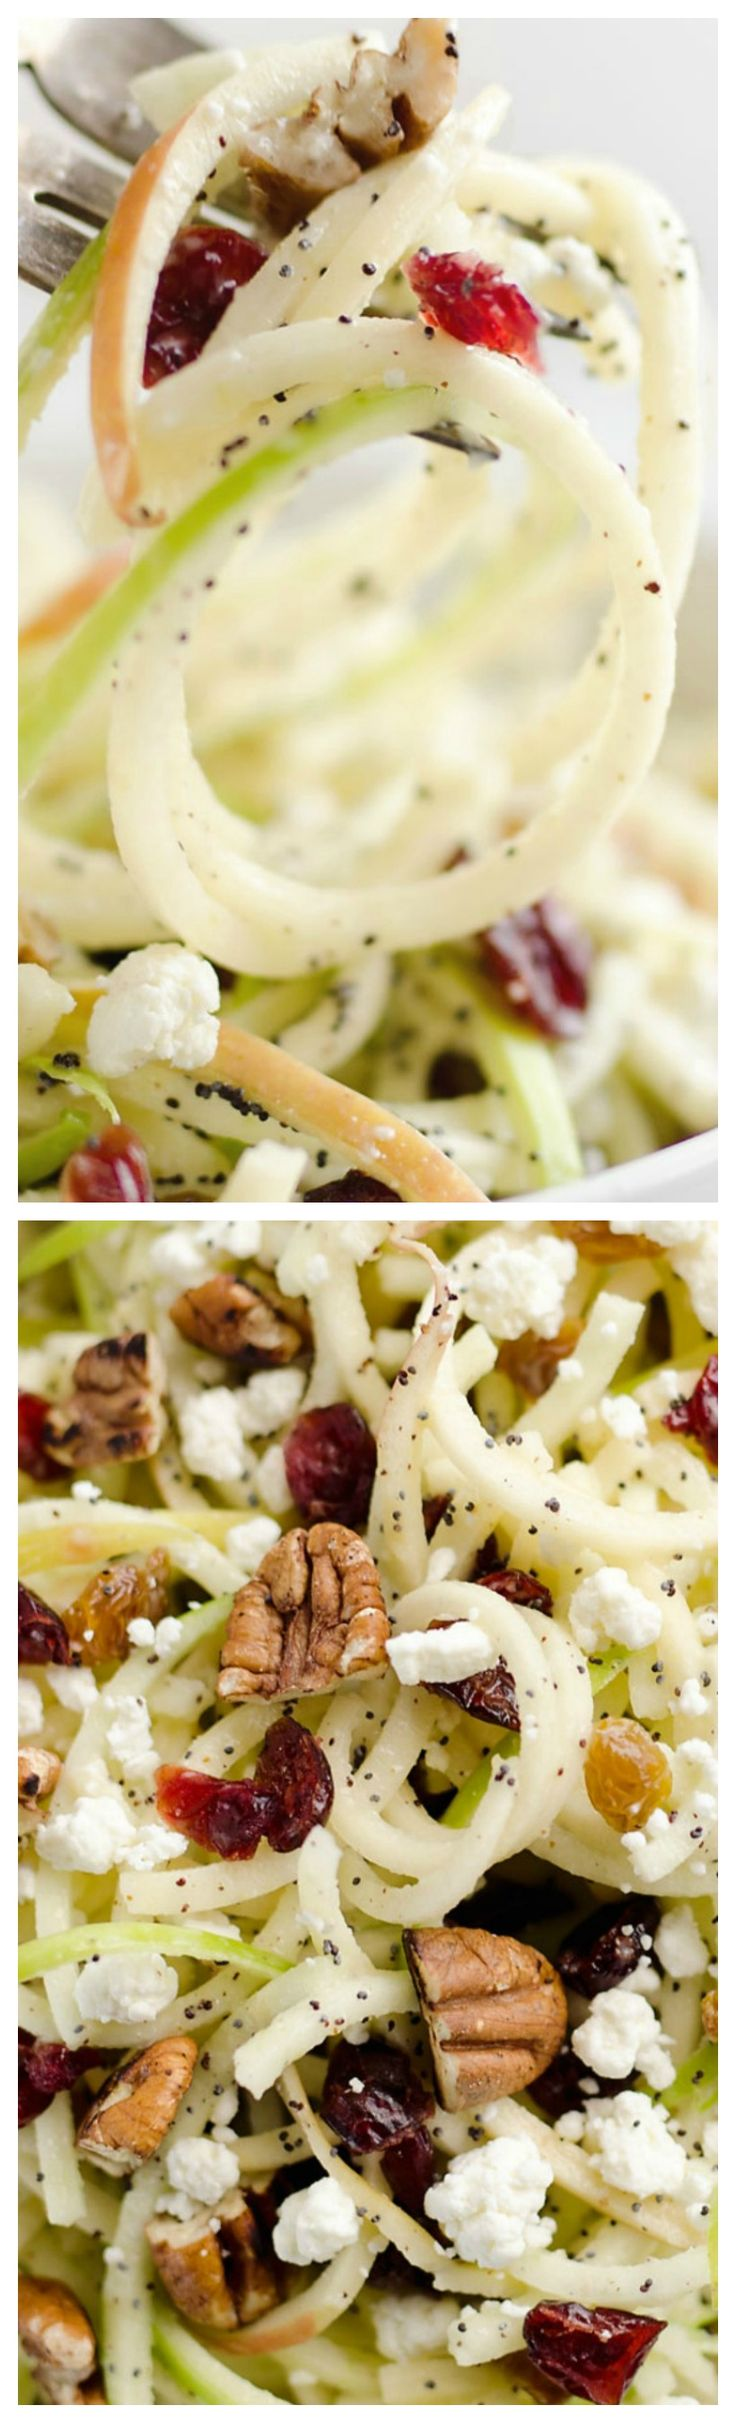 Spiralized Apple Cranberry Salad ~ An easy and healthy recipe made with crunchy apples, cranberries, pecans and goat cheese all tossed in a light Citrus Poppy Seed Dressing... This salad makes for a a deliciously easy side dish or vegetarian entree you wi